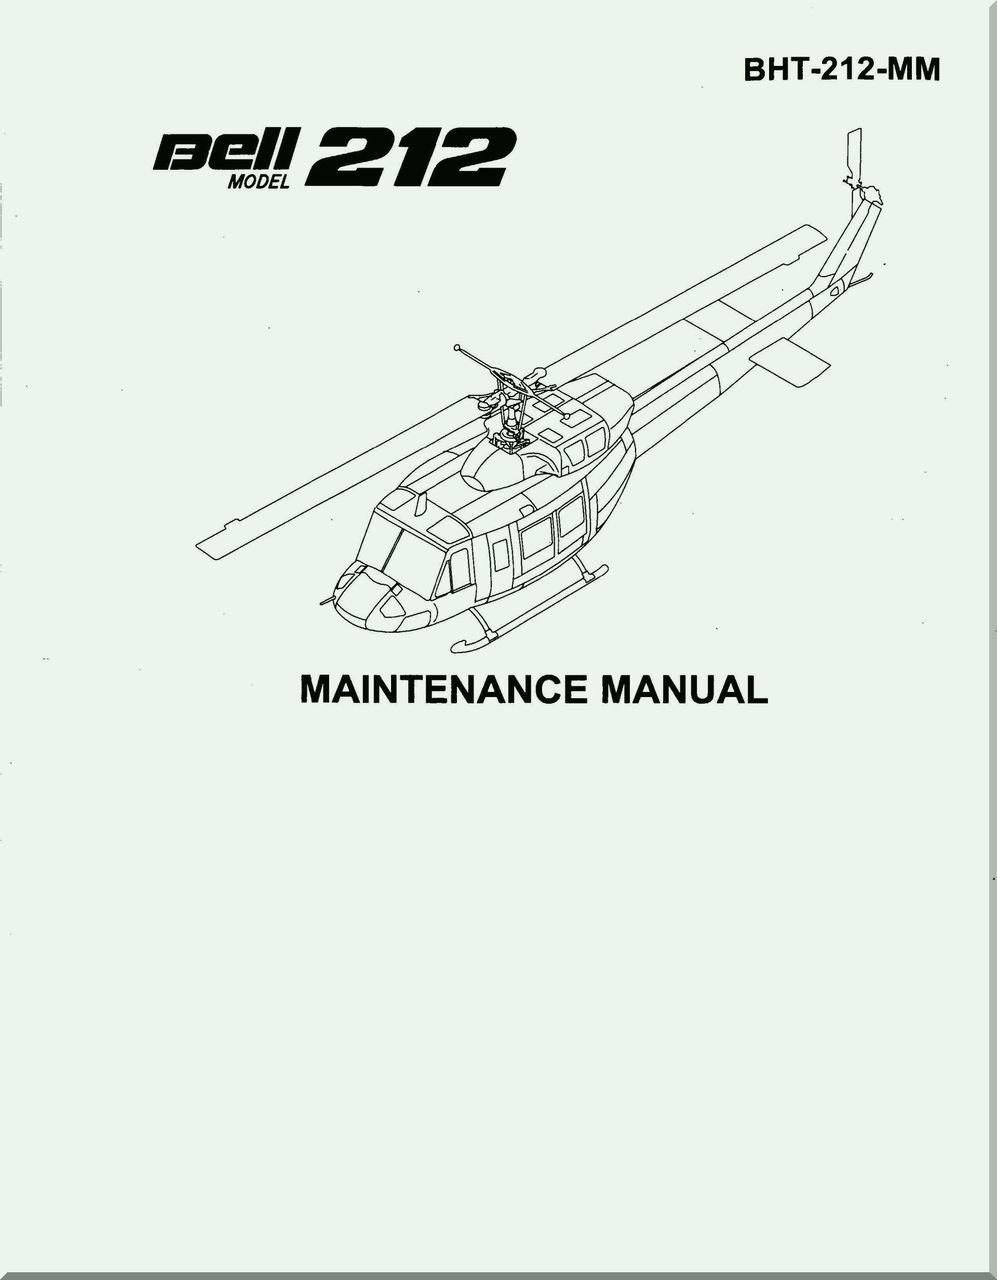 Bell Helicopter 212 Maintenance Manual